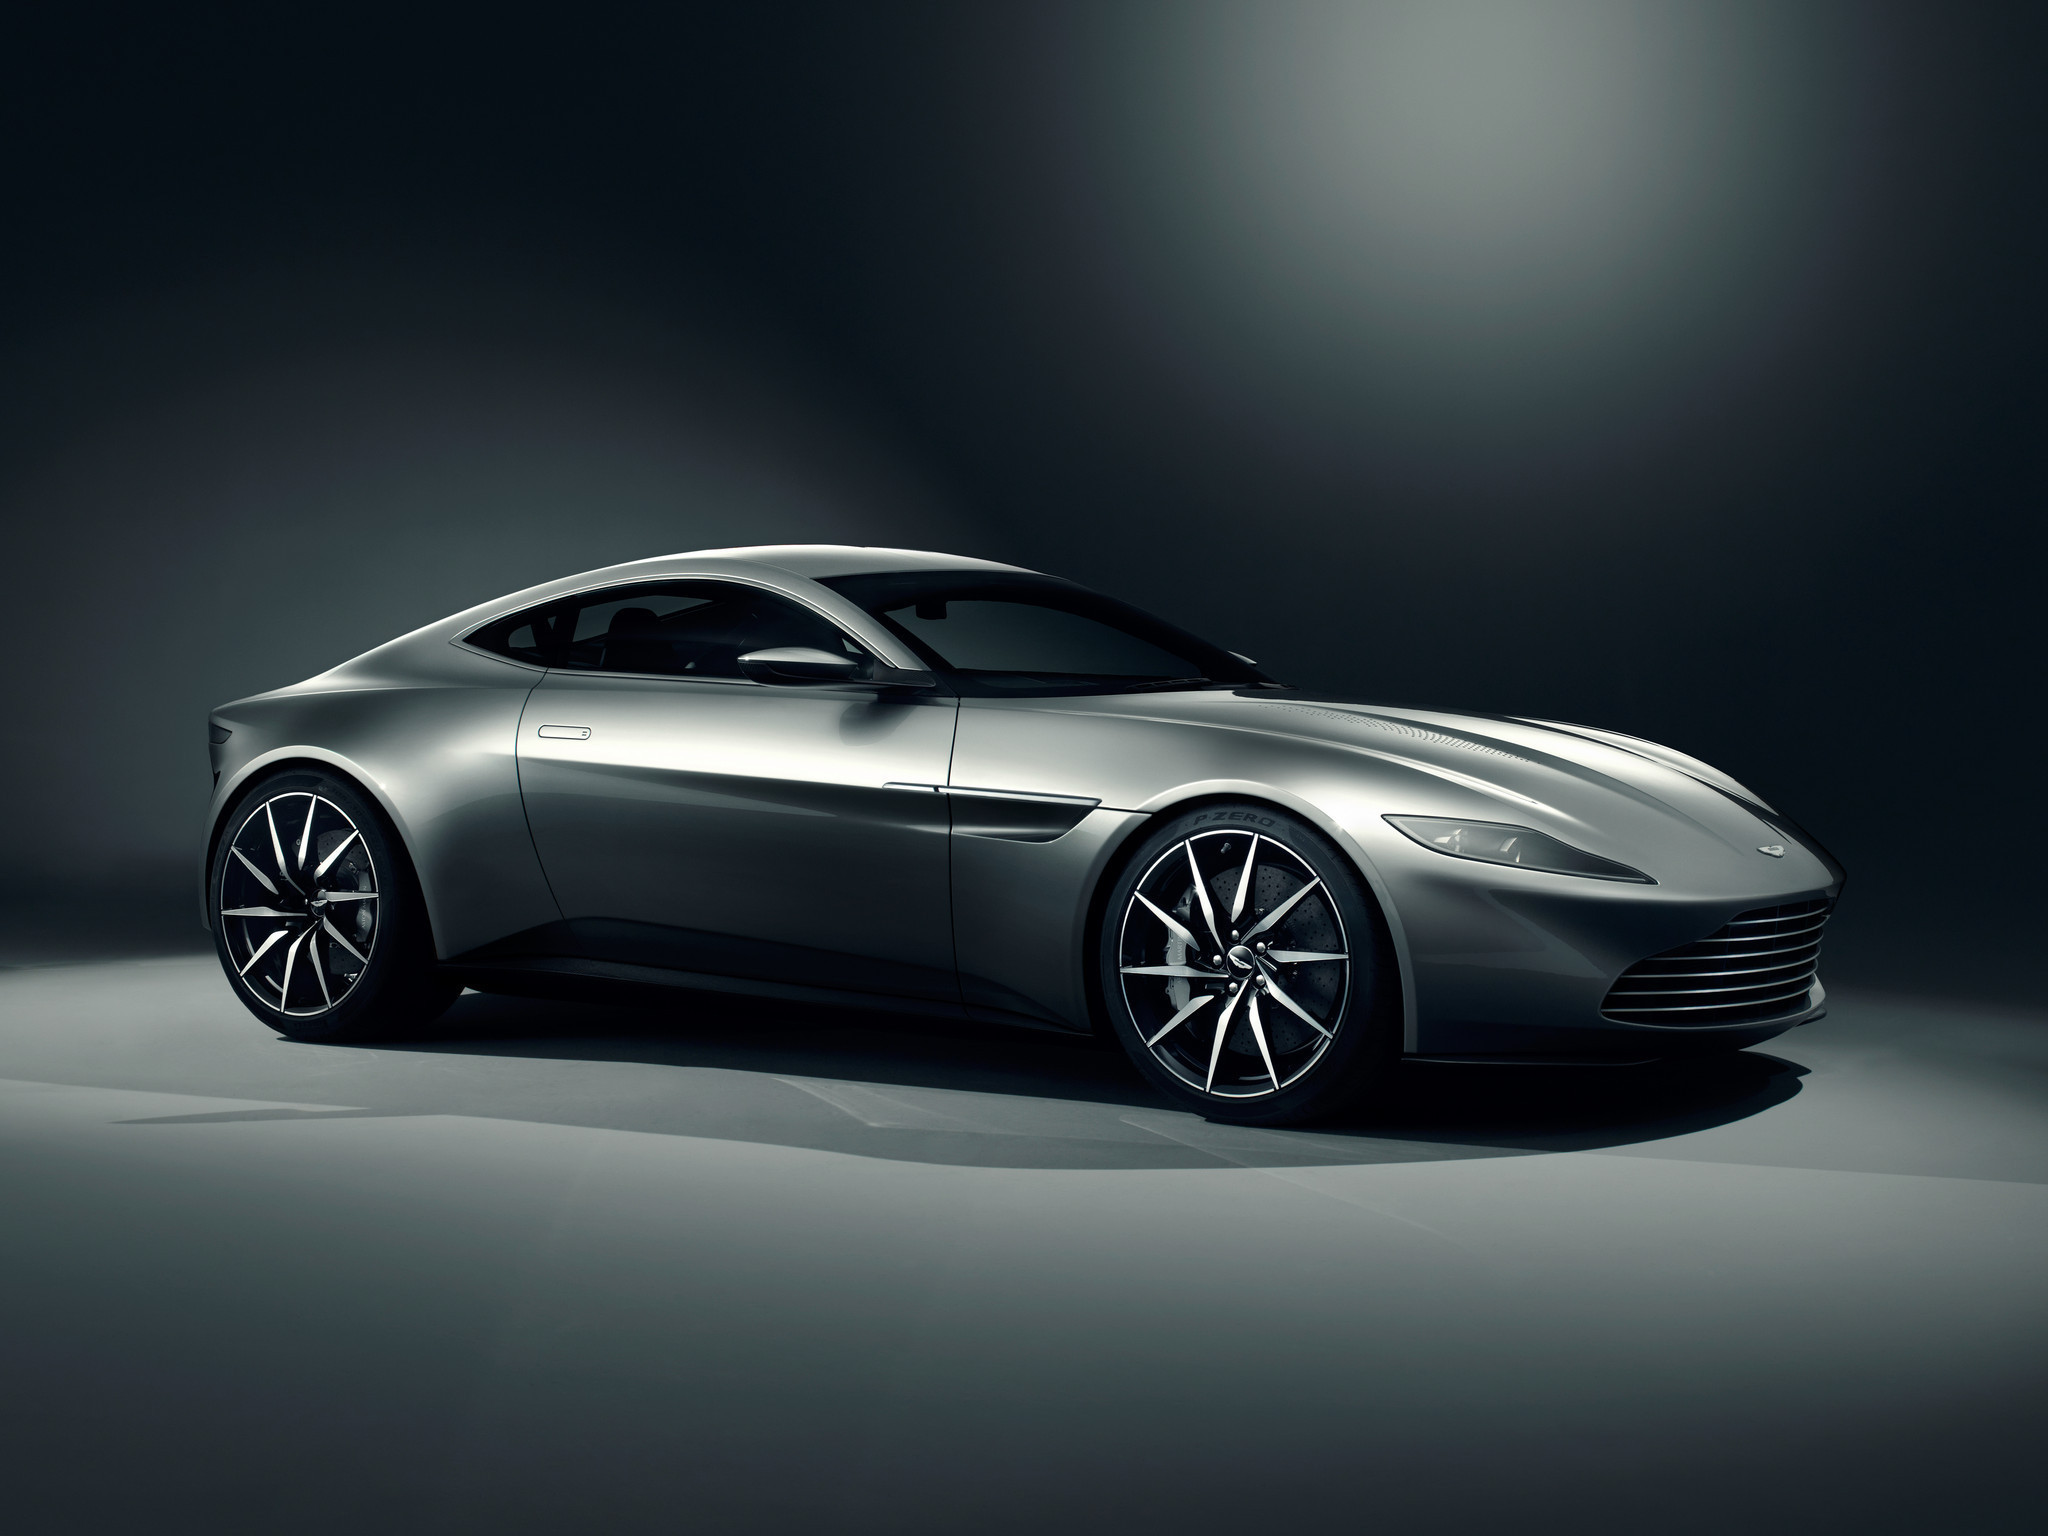 James Bond Aston Martin DB